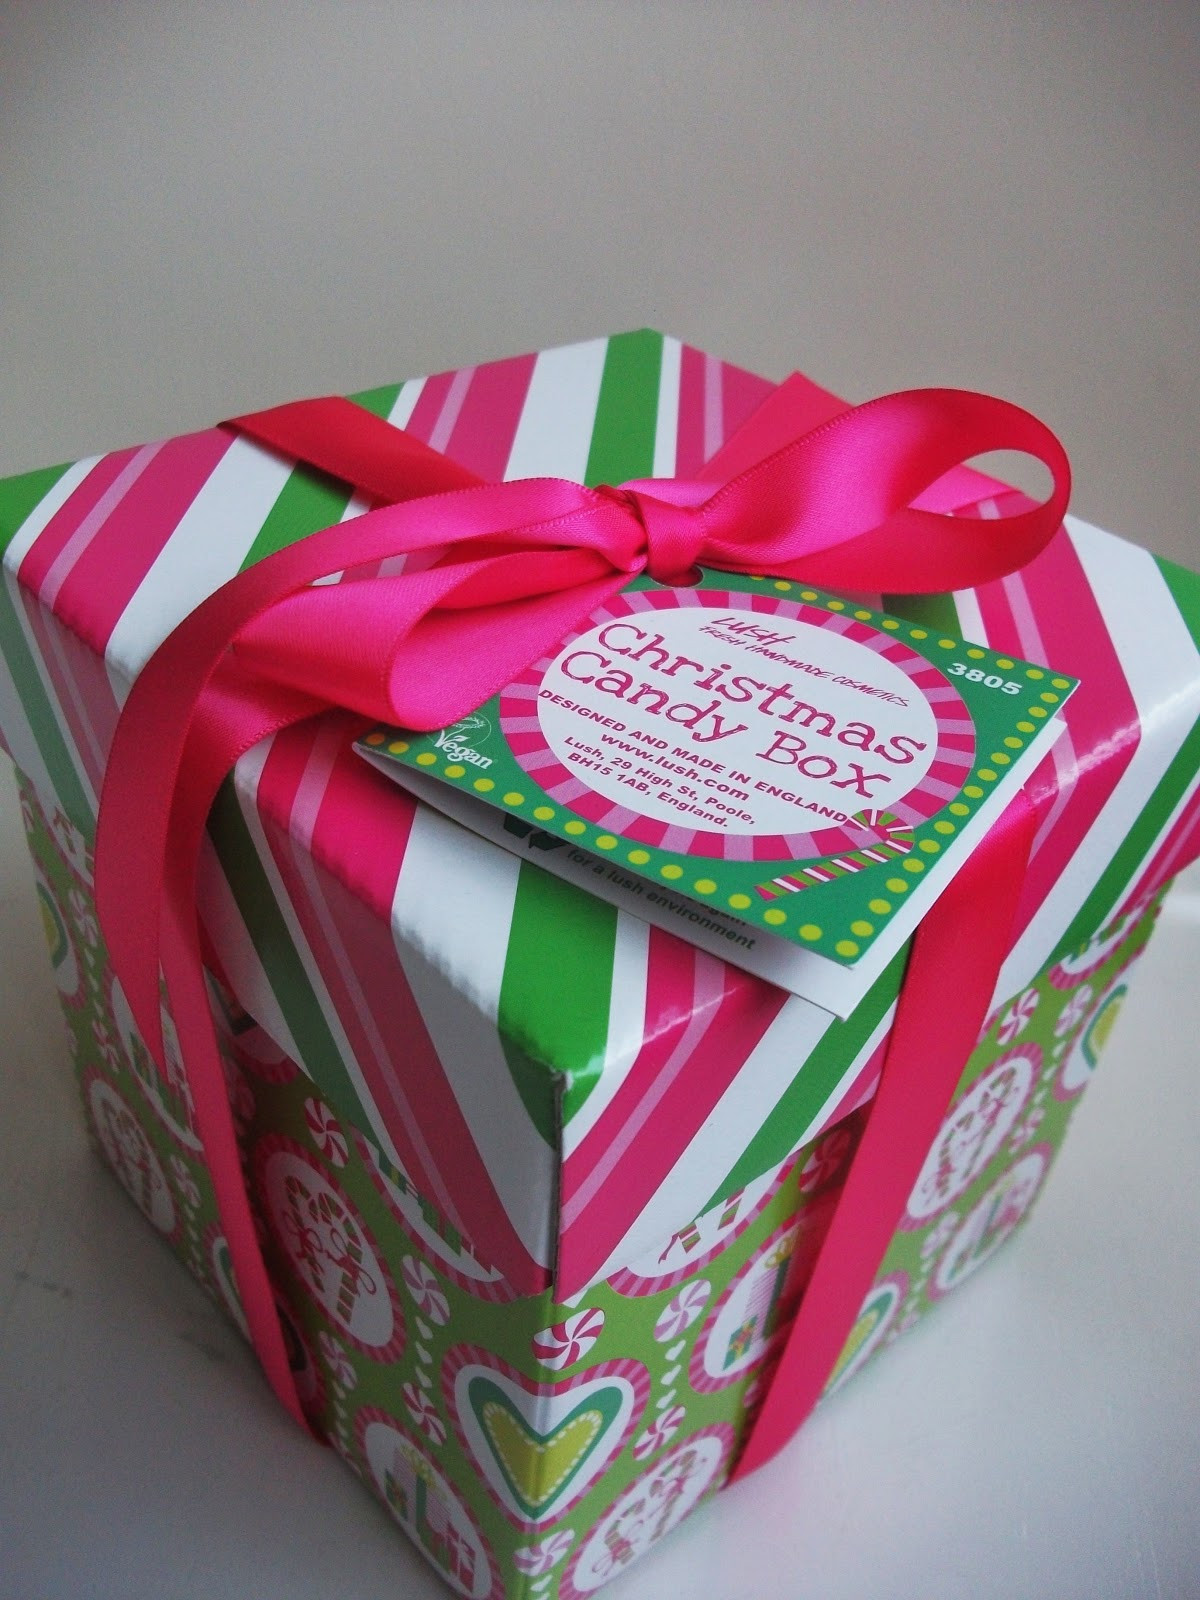 Christmas Candy Boxes  Glitter And Sparkle The Lush Christmas Candy Box